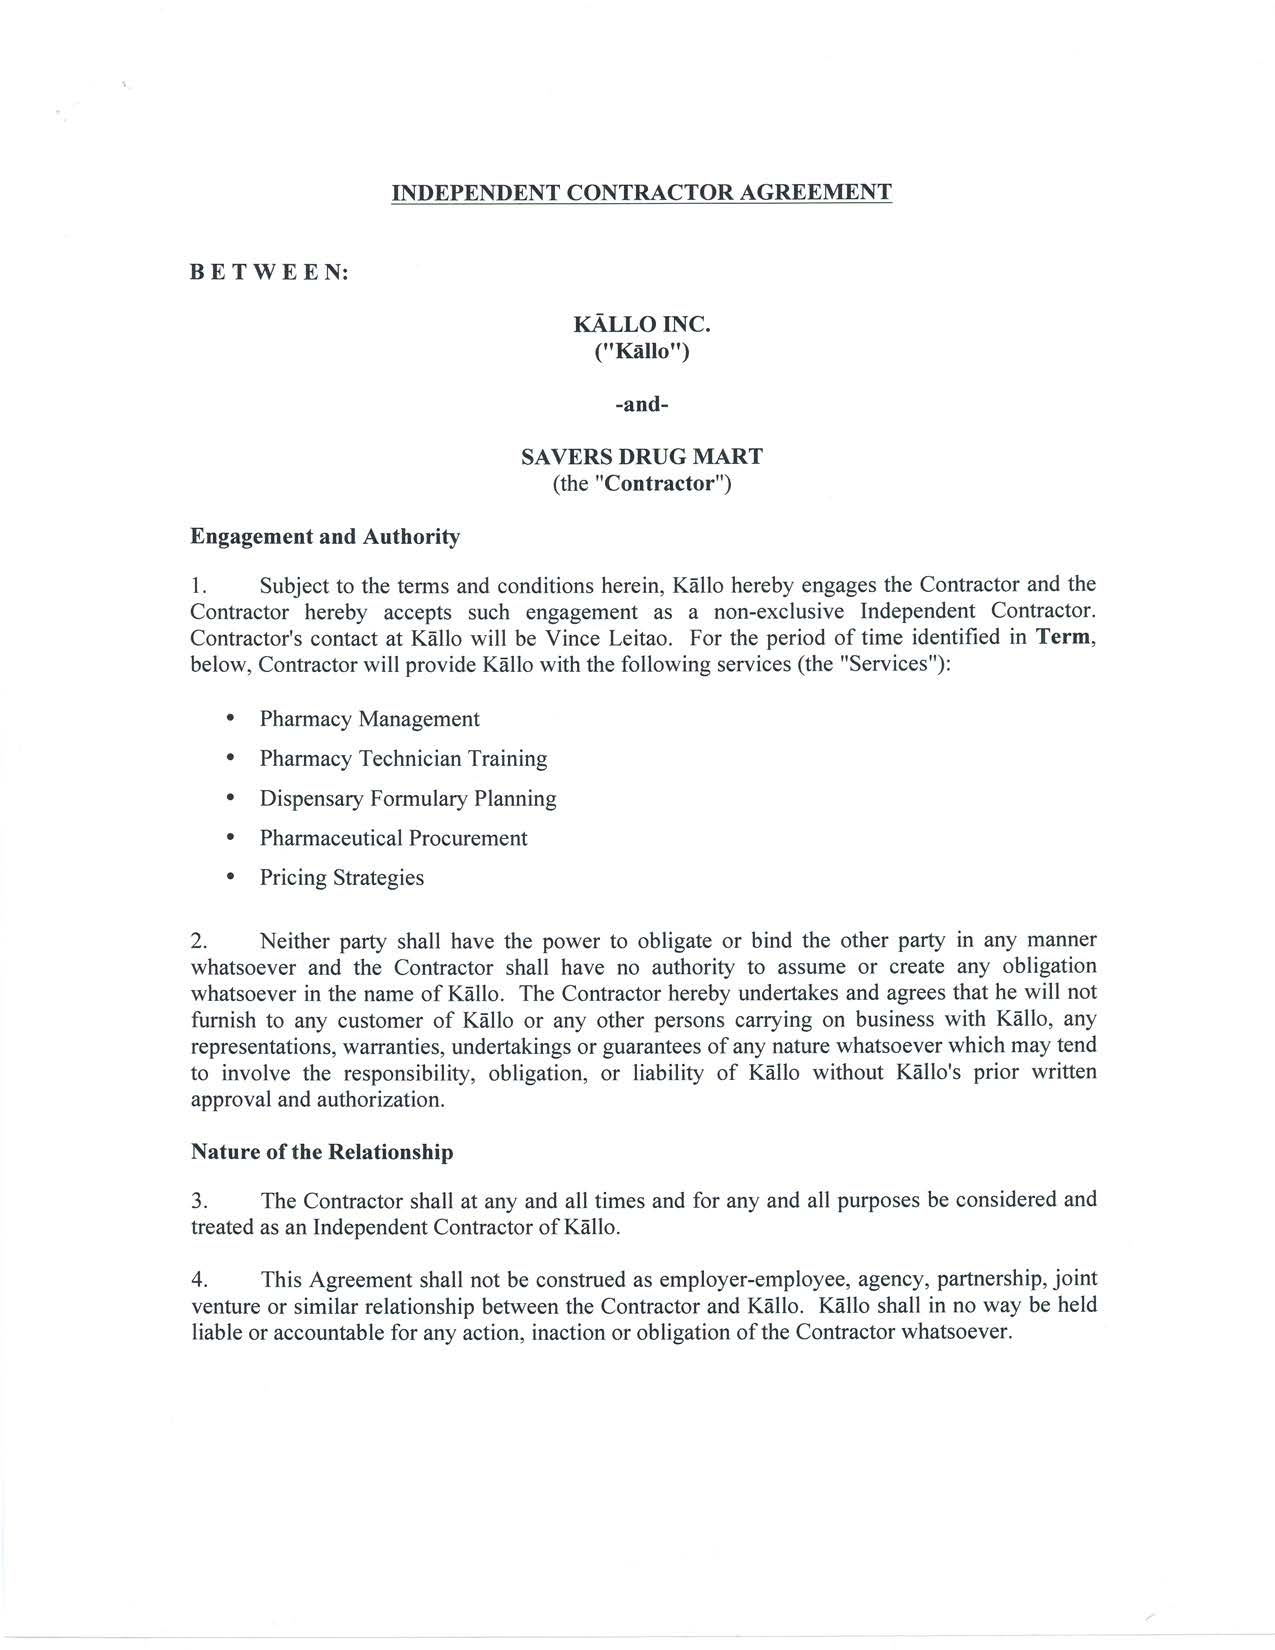 sample of independent contractor agreement form best resume sample of independent contractor agreement form